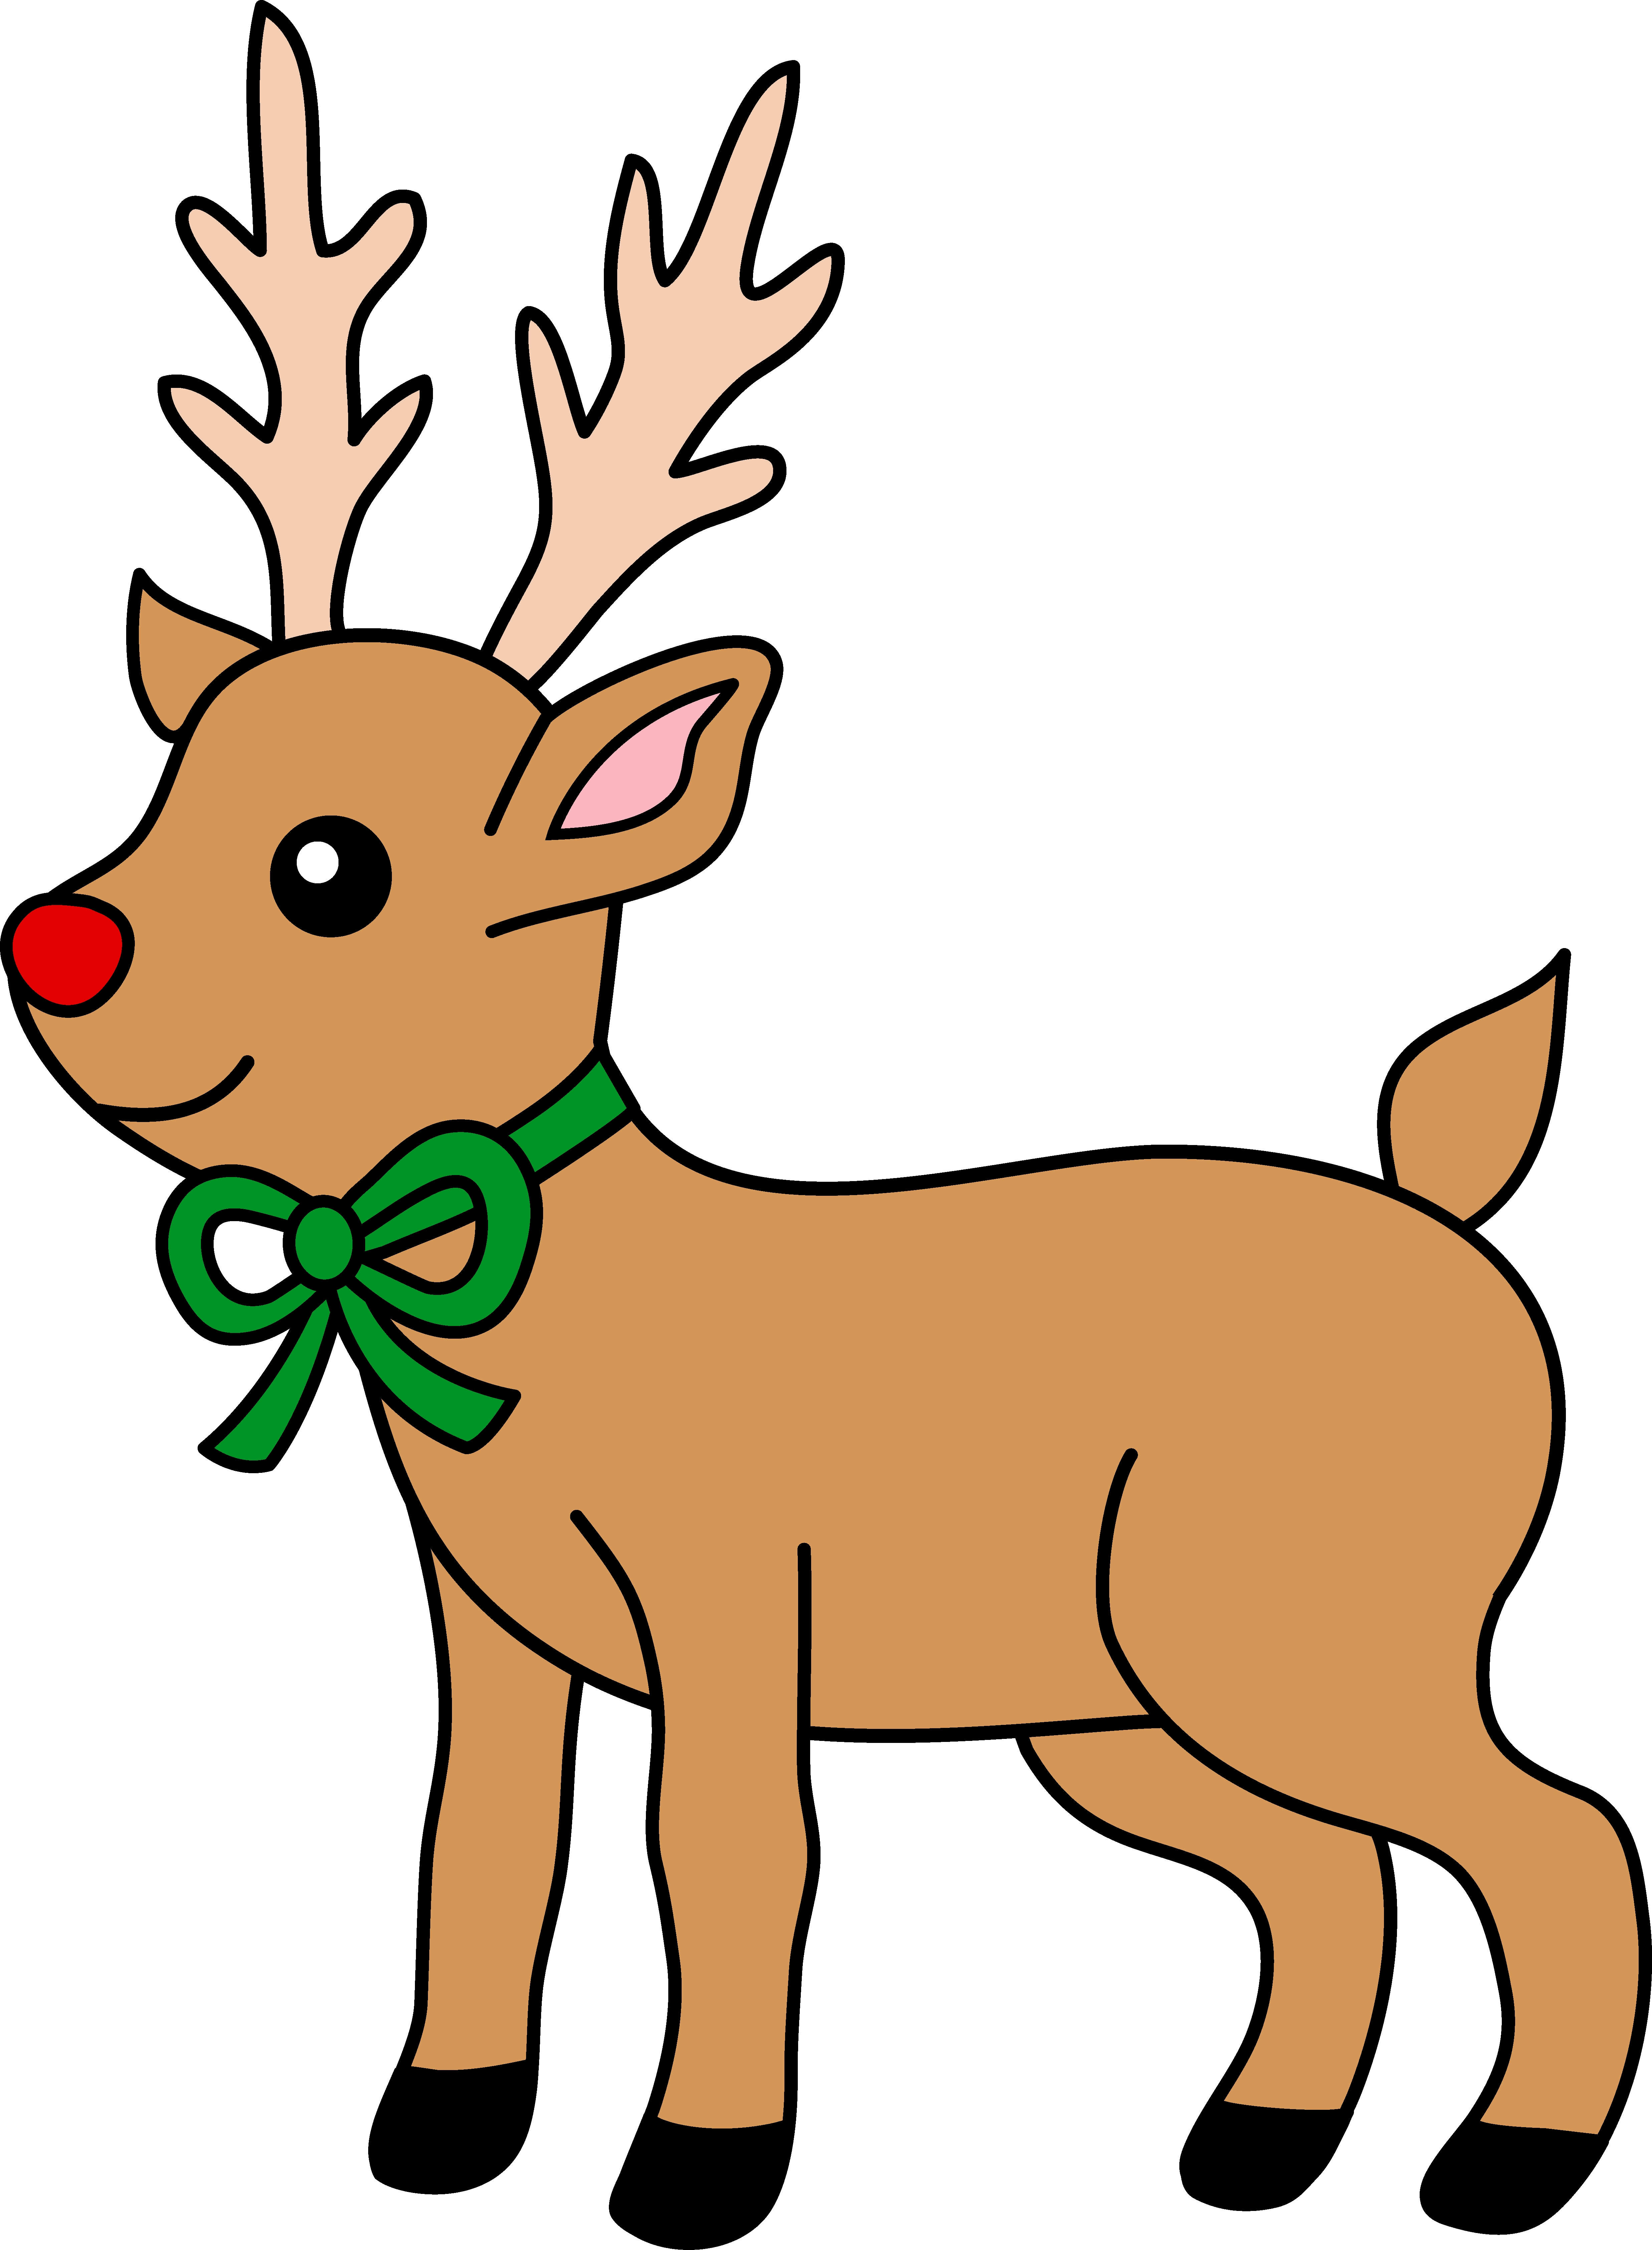 Antler clipart rudolph the red nosed reindeer. Fresh collection digital k